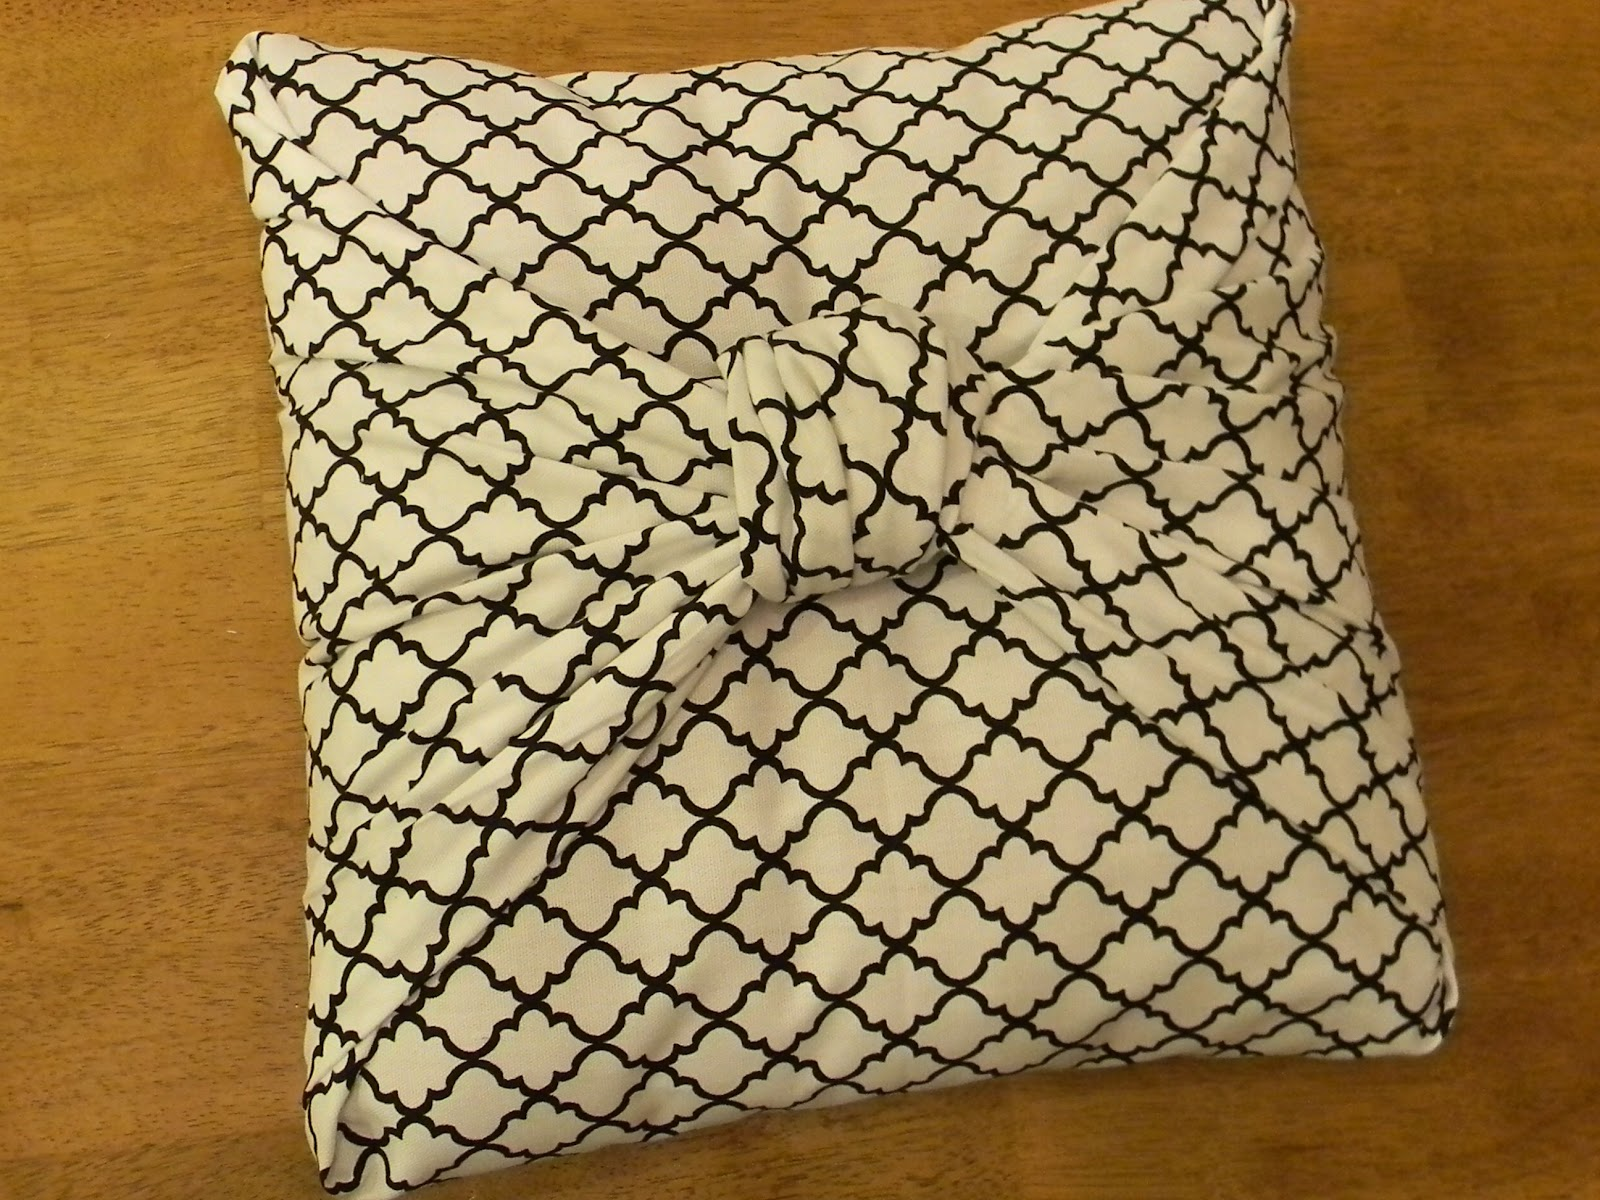 Diy Throw Pillow Cover No Sew : Here is another cute bow pillow tutorial from Organize And Decorate Everything. However she ...